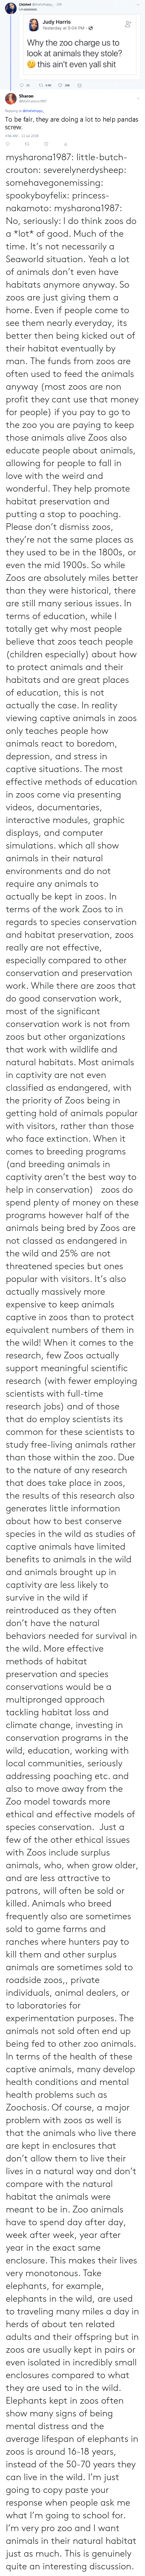 Not Necessarily: (Ja)ded @thefathippy 20h  maooo000  Judy Harris  Yesterday at 5:04 PM.  0+  Why the zoo charge us to  look at animals they stole?  this ain't even yall shit  Sharon  @MySharona1987  Replying to @thefathippy  To be fair, they are doing a lot to help pandas  screw.  4:56 AM- 11 Jul 2018 mysharona1987:  little-butch-crouton: severelynerdysheep:  somehavegonemissing:  spookyboyfelix:  princess-nakamoto:   mysharona1987:   No, seriously: I do think zoos do a *lot* of good. Much of the time. It's not necessarily a Seaworld situation.   Yeah a lot of animals don't even have habitats anymore anyway. So zoos are just giving them a home. Even if people come to see them nearly everyday, its better then being kicked out of their habitat eventually by man.   The funds from zoos are often used to feed the animals anyway (most zoos are non profit they cant use that money for people) if you pay to go to the zoo you are paying to keep those animals alive  Zoos also educate people about animals, allowing for people to fall in love with the weird and wonderful.  They help promote habitat preservation and putting a stop to poaching. Please don't dismiss zoos, they're not the same places as they used to be in the 1800s, or even the mid 1900s.   So while Zoos are absolutely miles better than they were historical, there are still many serious issues. In terms of education, while I totally get why most people believe that zoos teach people (children especially) about how to protect animals and their habitats and are great places of education, this is not actually the case. In reality viewing captive animals in zoos only teaches people how animals react to boredom, depression, and stress in captive situations. The most effective methods of education in zoos come via presenting videos, documentaries, interactive modules, graphic displays, and computer simulations. which all show animals in their natural environments and do not require any animals to actually be kept in zoos. In terms of the work Zoos to in regards to species conservation and habitat preservation, zoos really are not effective, especially compared to other conservation and preservation work. While there are zoos that do good conservation work, most of the significant conservation work is not from zoos but other organizations that work with wildlife and natural habitats. Most animals in captivity are not even classified as endangered, with the priority of Zoos being in getting hold of animals popular with visitors, rather than those who face extinction. When it comes to breeding programs (and breeding animals in captivity aren't the best way to help in conservation)   zoos do spend plenty of money on these programs however half of the animals being bred by Zoos are not classed as endangered in the wild and 25% are not threatened species but ones popular with visitors. It's also actually massively more expensive to keep animals captive in zoos than to protect equivalent numbers of them in the wild! When it comes to the research, few Zoos actually support meaningful scientific research (with fewer employing scientists with full-time research jobs) and of those that do employ scientists its common for these scientists to study free-living animals rather than those within the zoo. Due to the nature of any research that does take place in zoos, the results of this research also generates little information about how to best conserve species in the wild as studies of captive animals have limited benefits to animals in the wild and animals brought up in captivity are less likely to survive in the wild if reintroduced as they often don't have the natural behaviors needed for survival in the wild. More effective methods of habitat preservation and species conservations would be a multipronged approach tackling habitat loss and climate change, investing in conservation programs in the wild, education, working with local communities, seriously addressing poaching etc. and also to move away from the Zoo model towards more ethical and effective models of species conservation.  Just a few of the other ethical issues with Zoos include surplus animals, who, when grow older, and are less attractive to patrons, will often be sold or killed. Animals who breed frequently also are sometimes sold to game farms and ranches where hunters pay to kill them and other surplus animals are sometimes sold to roadside zoos,, private individuals, animal dealers, or to laboratories for experimentation purposes. The animals not sold often end up being fed to other zoo animals. In terms of the health of these captive animals, many develop health conditions and mental health problems such as Zoochosis. Of course, a major problem with zoos as well is that the animals who live there are kept in enclosures that don't allow them to live their lives in a natural way and don't compare with the natural habitat the animals were meant to be in. Zoo animals have to spend day after day, week after week, year after year in the exact same enclosure. This makes their lives very monotonous. Take elephants, for example, elephants in the wild, are used to traveling many miles a day in herds of about ten related adults and their offspring but in zoos are usually kept in pairs or even isolated in incredibly small enclosures compared to what they are used to in the wild. Elephants kept in zoos often show many signs of being mental distress and the average lifespan of elephants in zoos is around 16-18 years, instead of the 50-70 years they can live in the wild.   I'm just going to copy paste your response when people ask me what I'm going to school for. I'm very pro zoo and I want animals in their natural habitat just as much.  This is genuinely quite an interesting discussion.